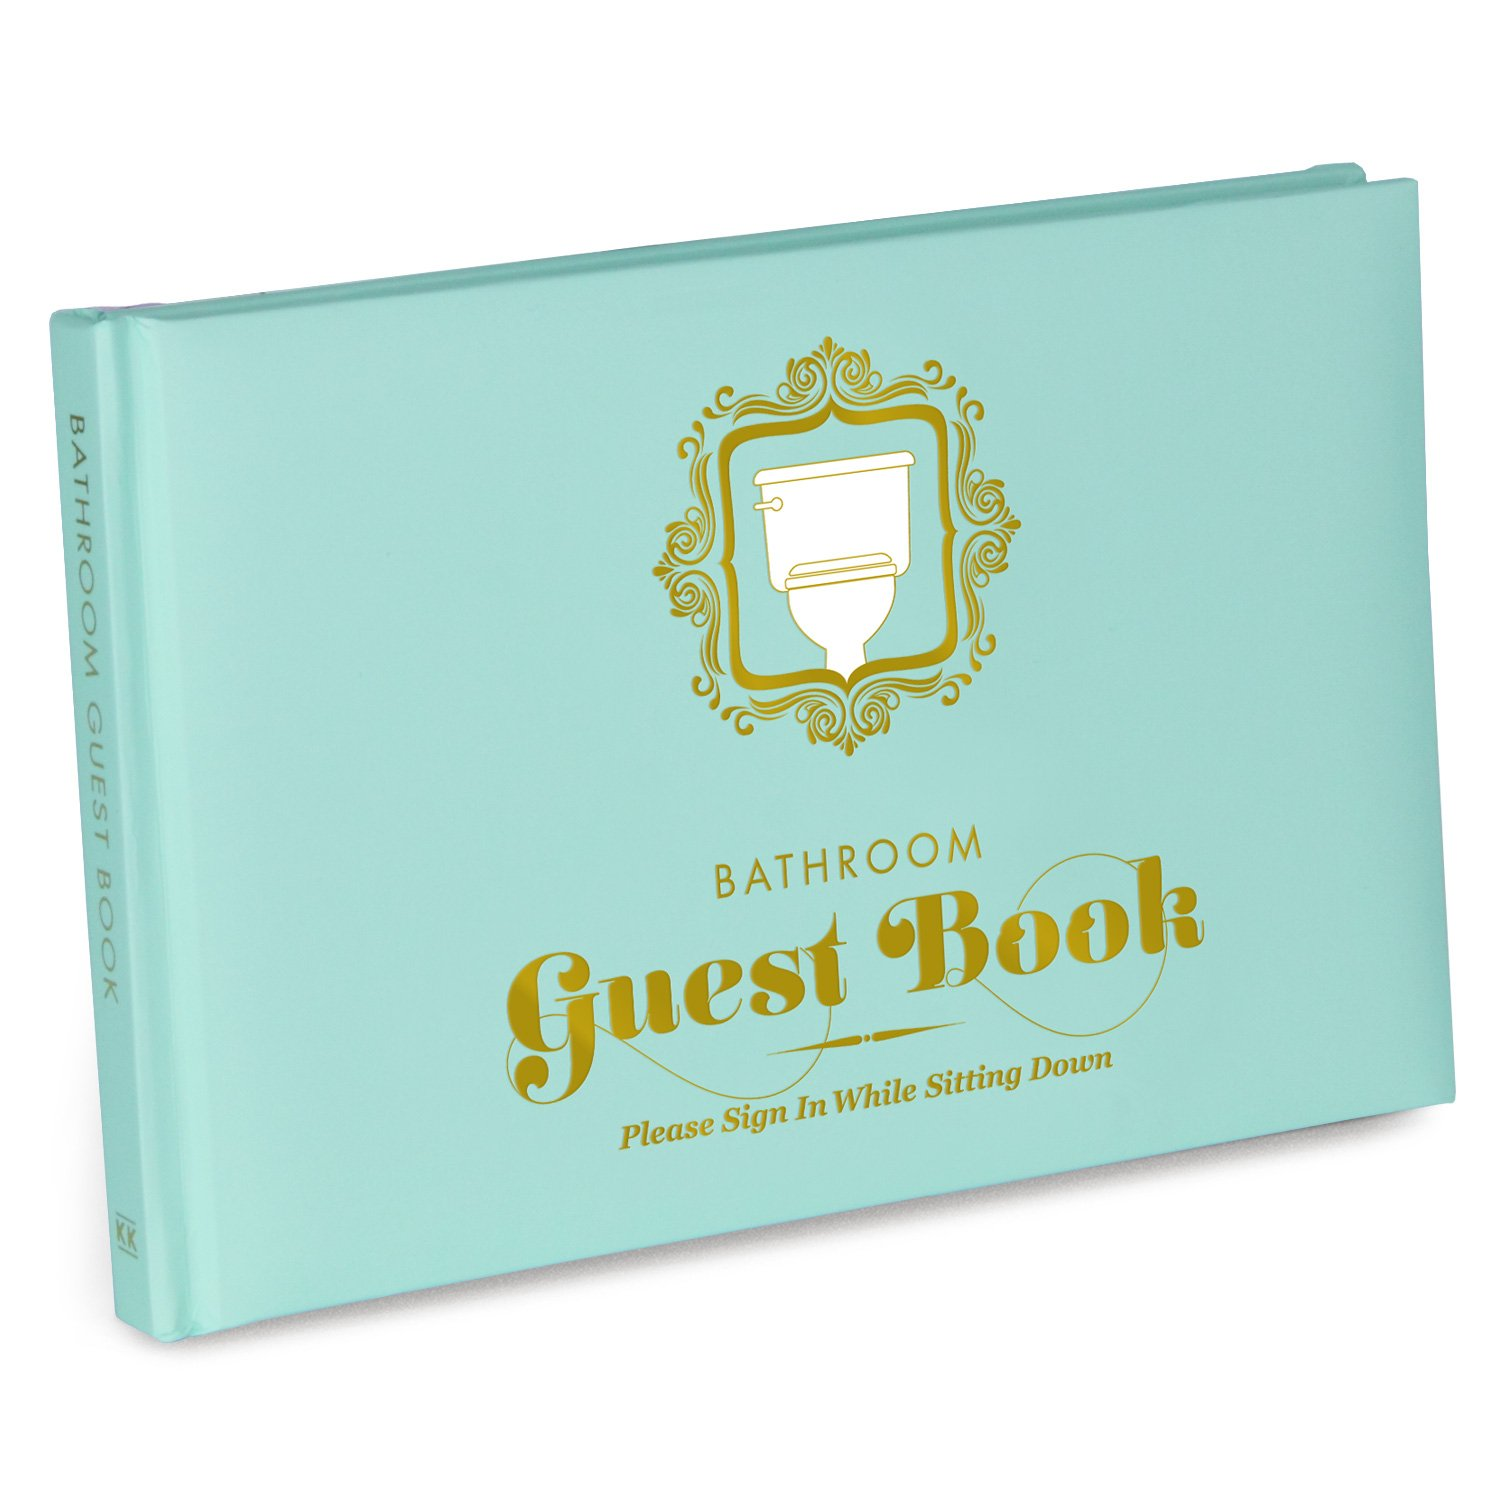 Amazon Knock Knock Bathroom Guest Book fice Products